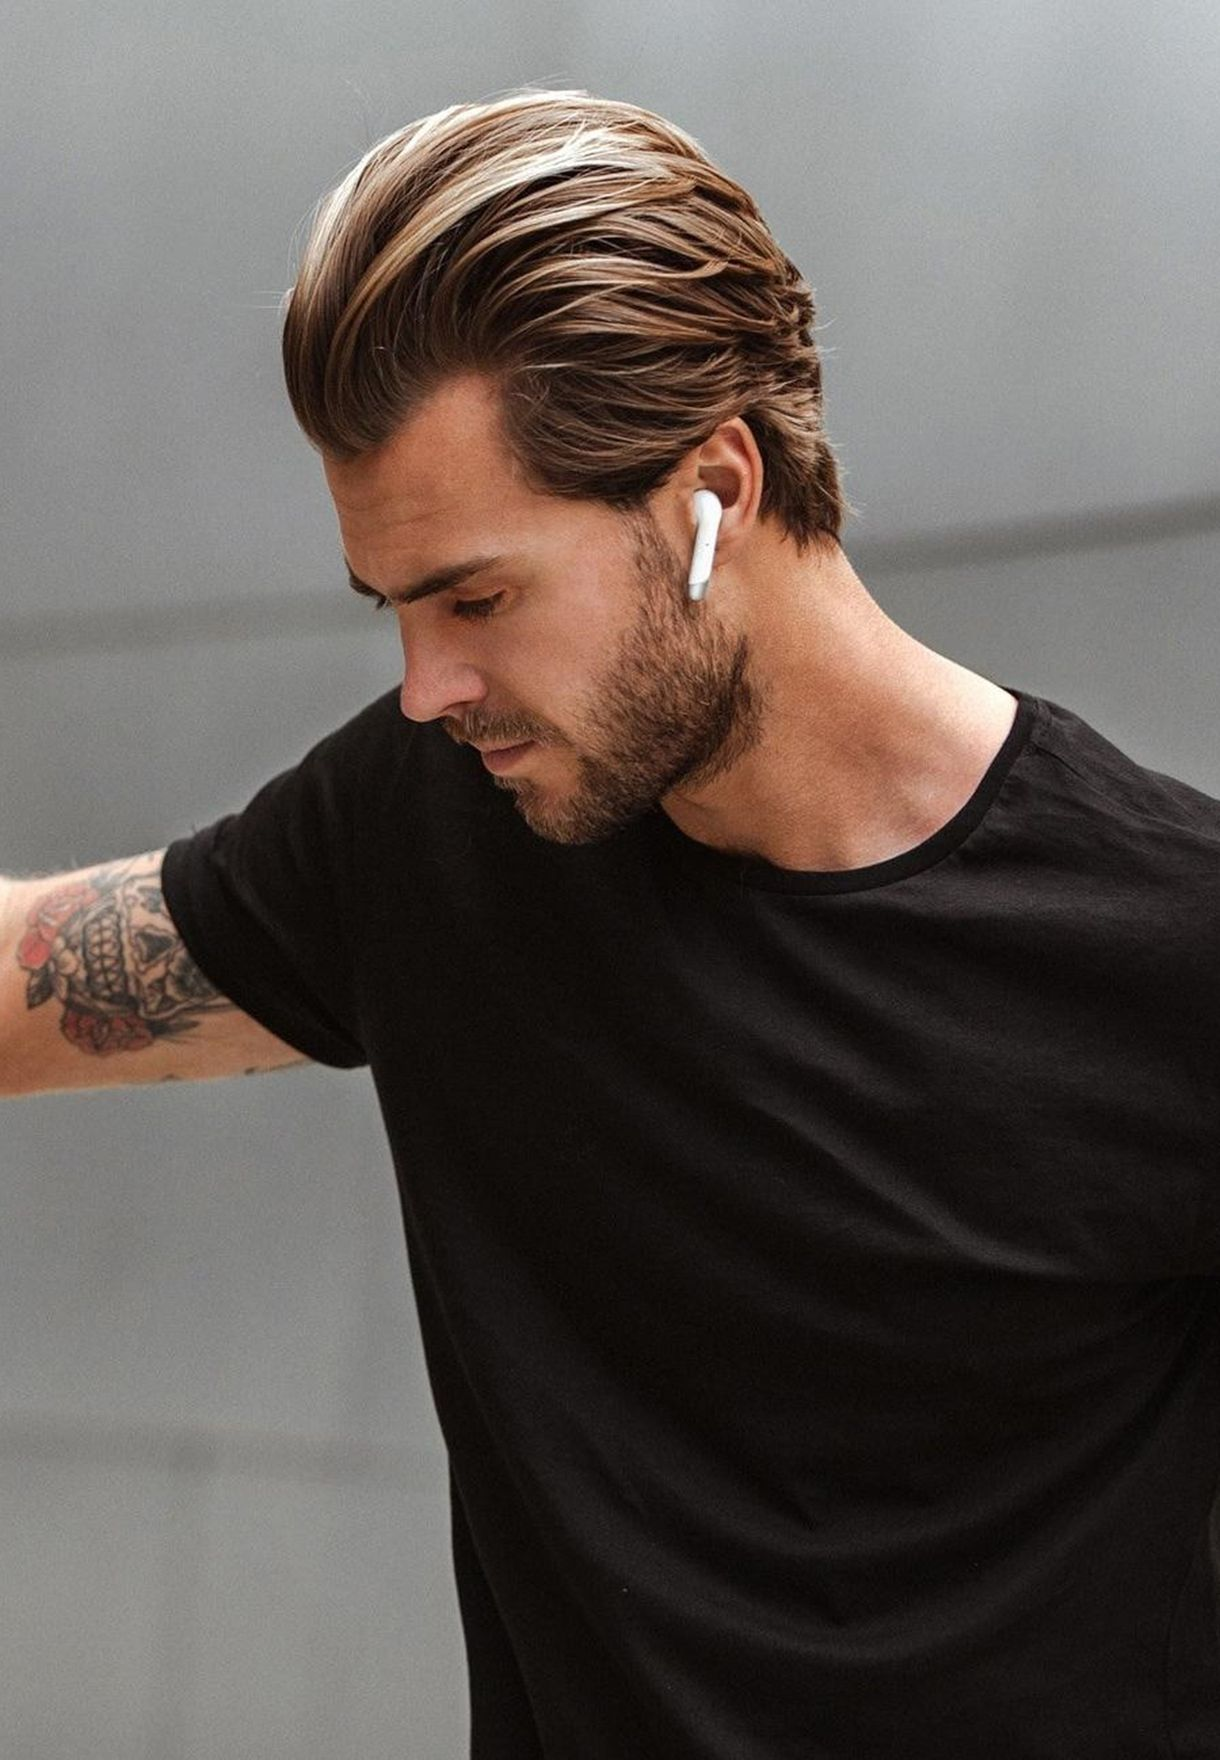 Air 1 Plus Wireless Earphones